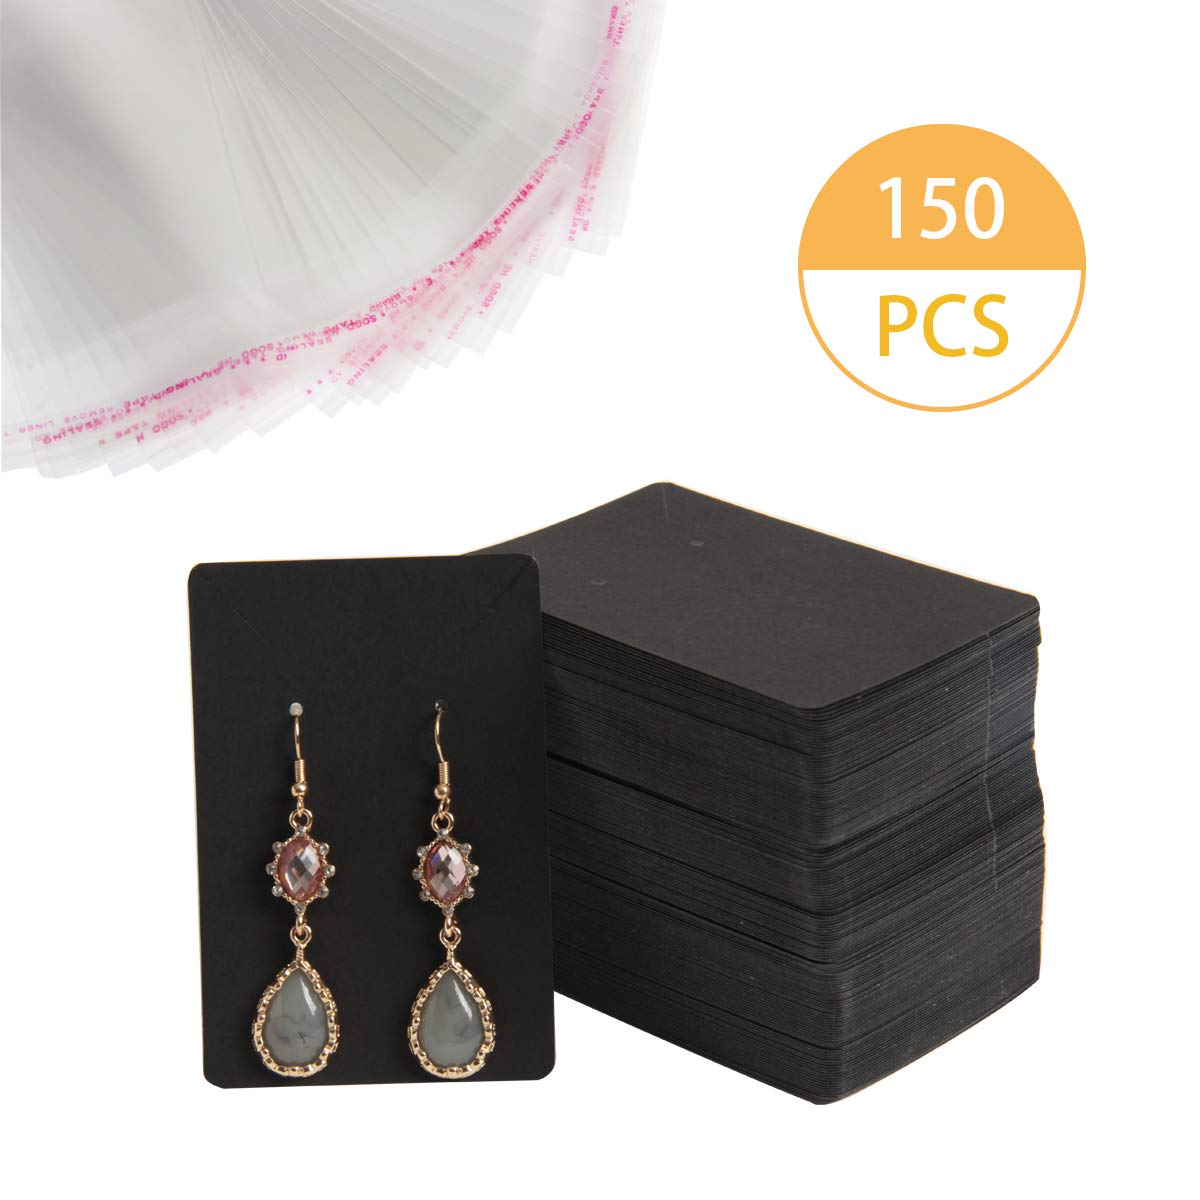 Earring Display Cards Blank Card Tags for DIY Ear Studs 3.5 x 2.3 Inches Earrings Necklaces Kraft Black Hapy Shop 150 Pcs Earring Display Card Necklace Display Cards with 150 Pcs Self-Seal Bags